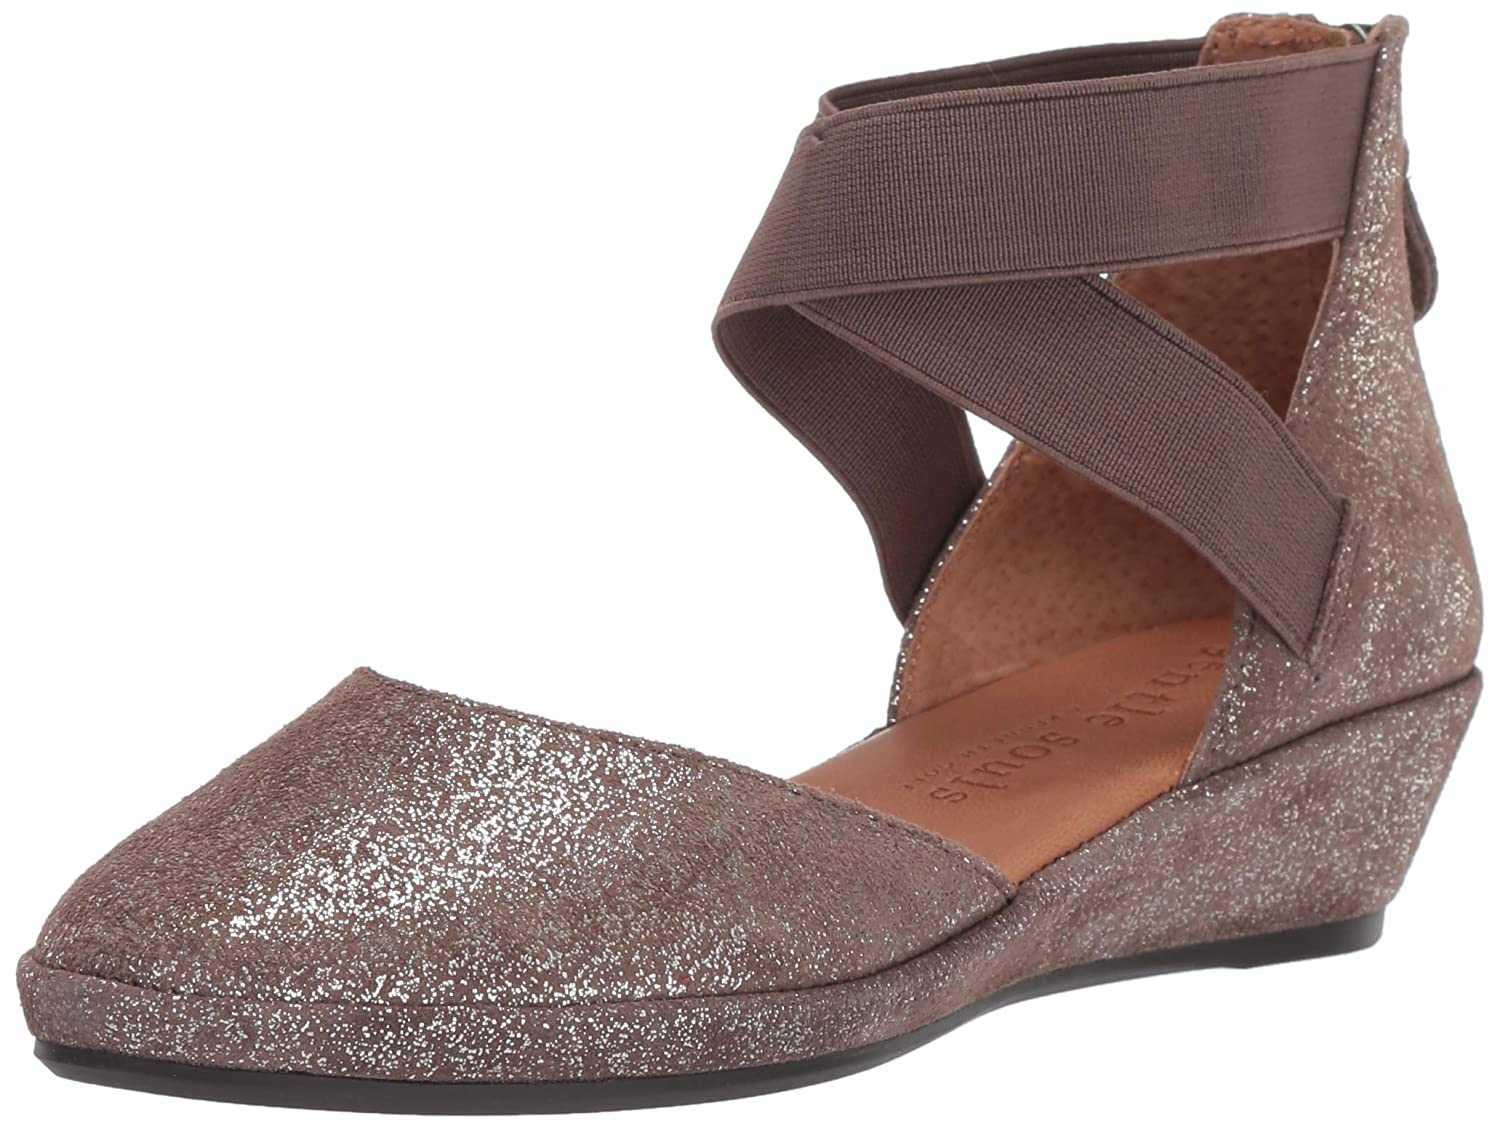 Cocoa Gentle Souls Women's Noa Wedge with Anklestrap Platform